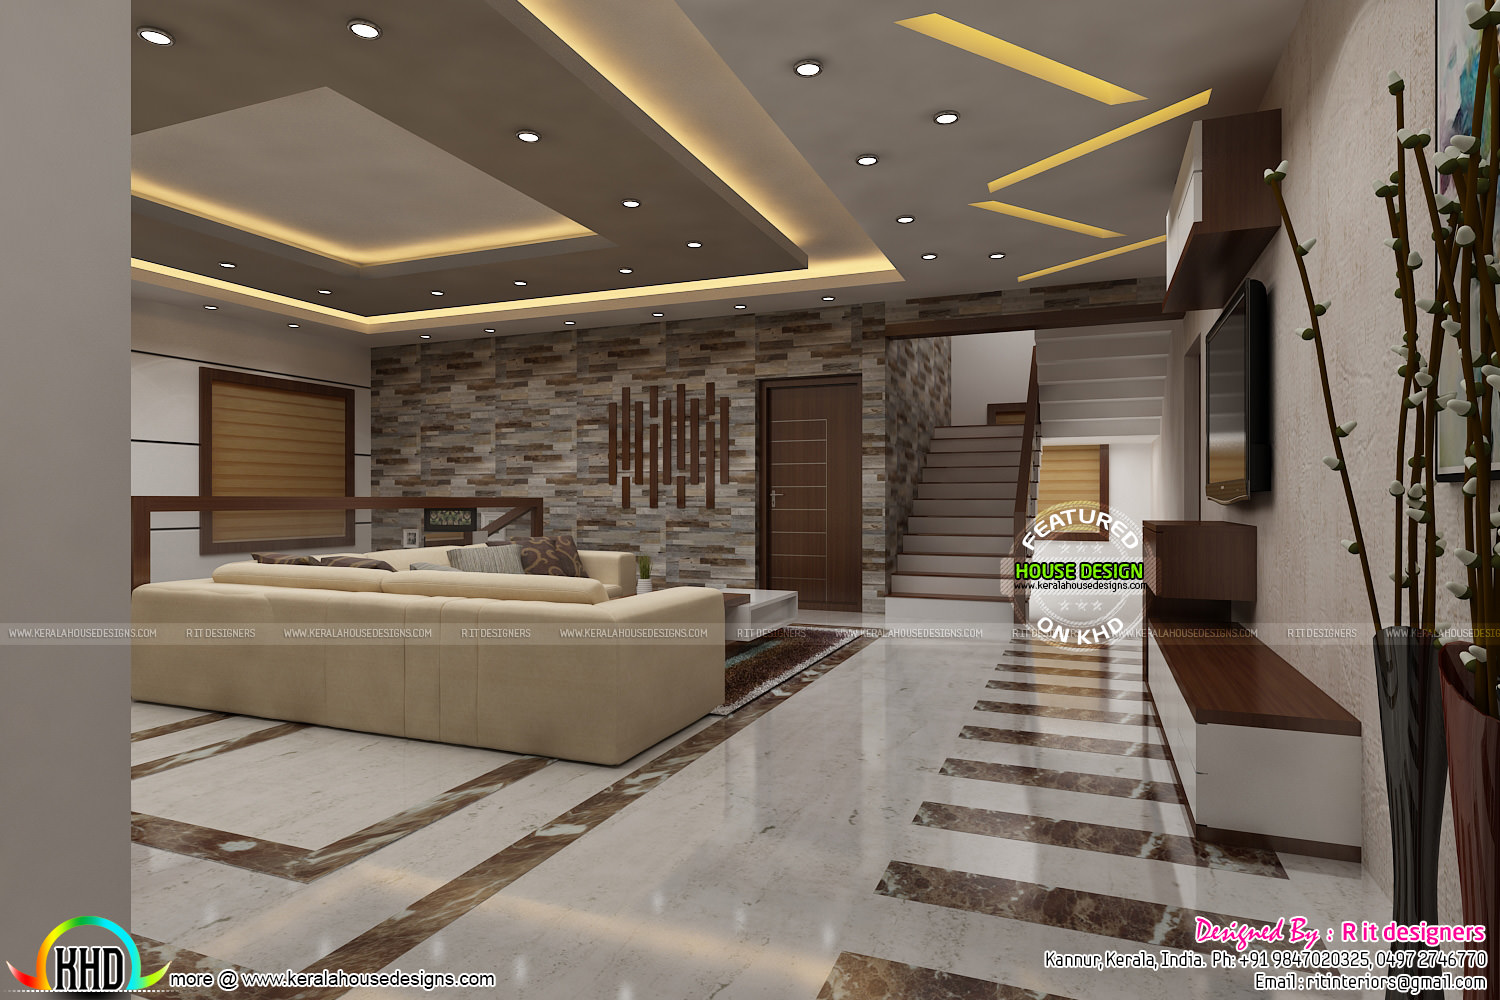 Most modern kerala living room interior kerala home for Interior designs modern